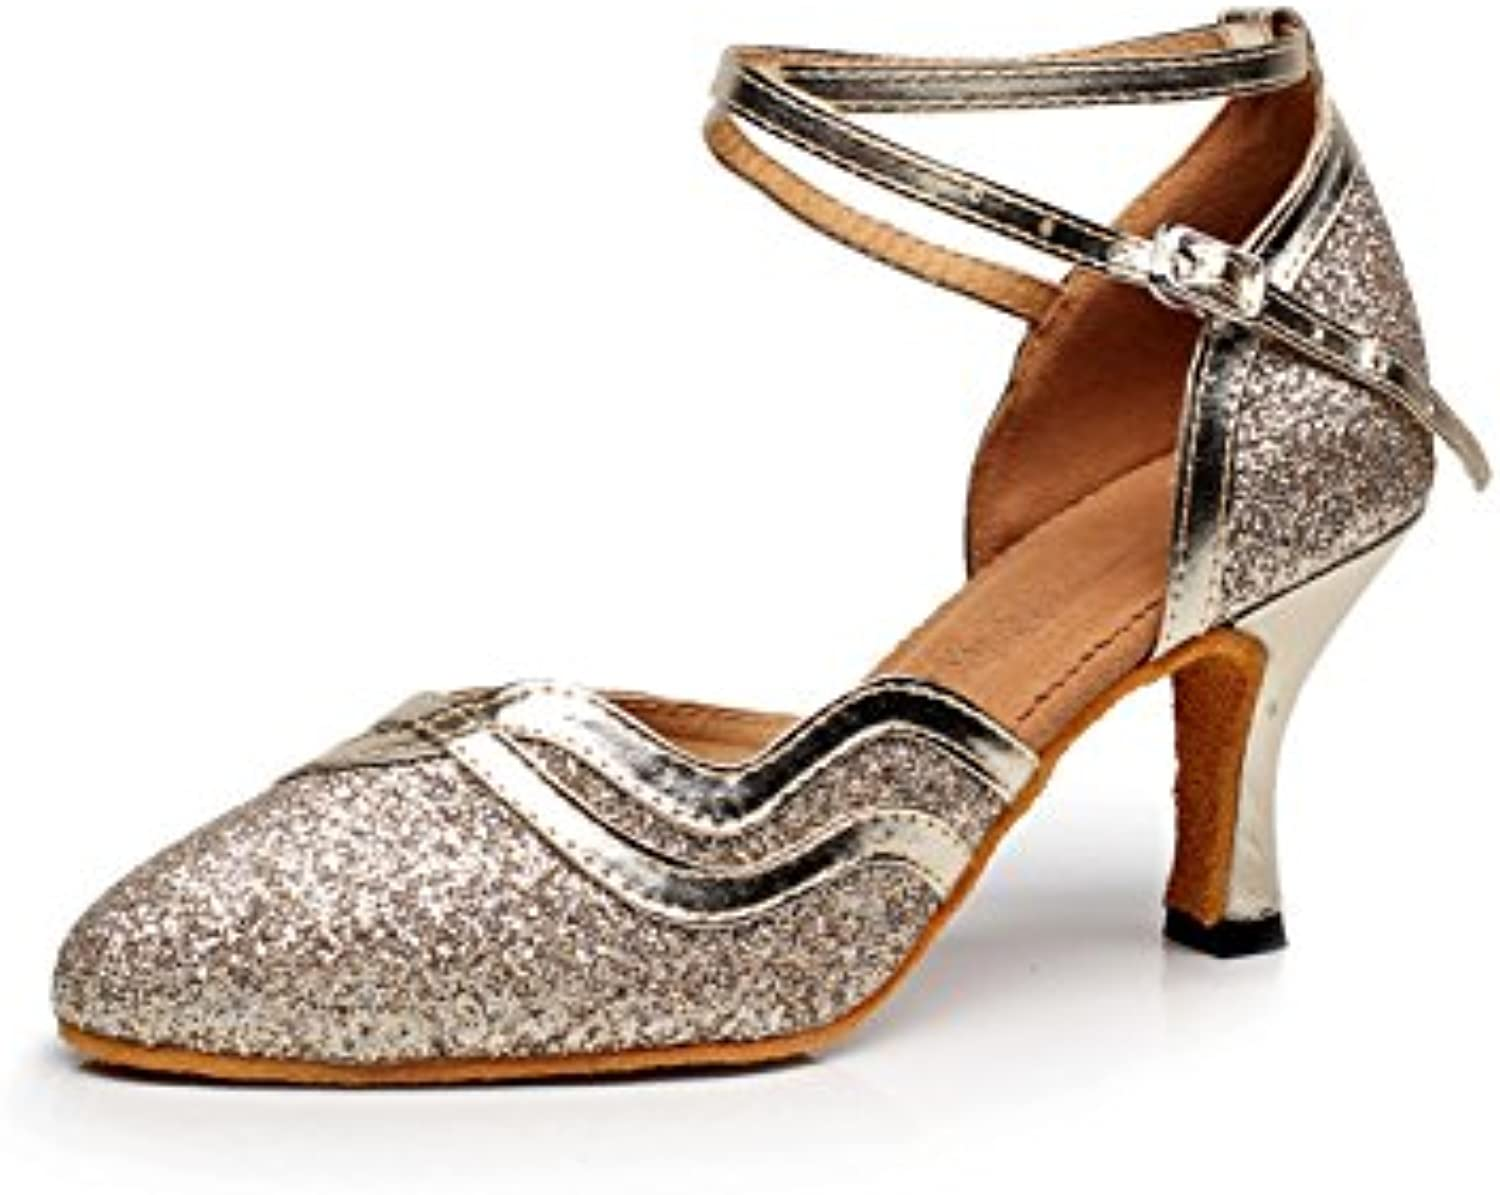 b77665a1dbe5 JSHOE Womens Closed Toe High Heel Heel Heel PU Leather Glitter Salsa Tango  Ballroom Latin Dance Shoes